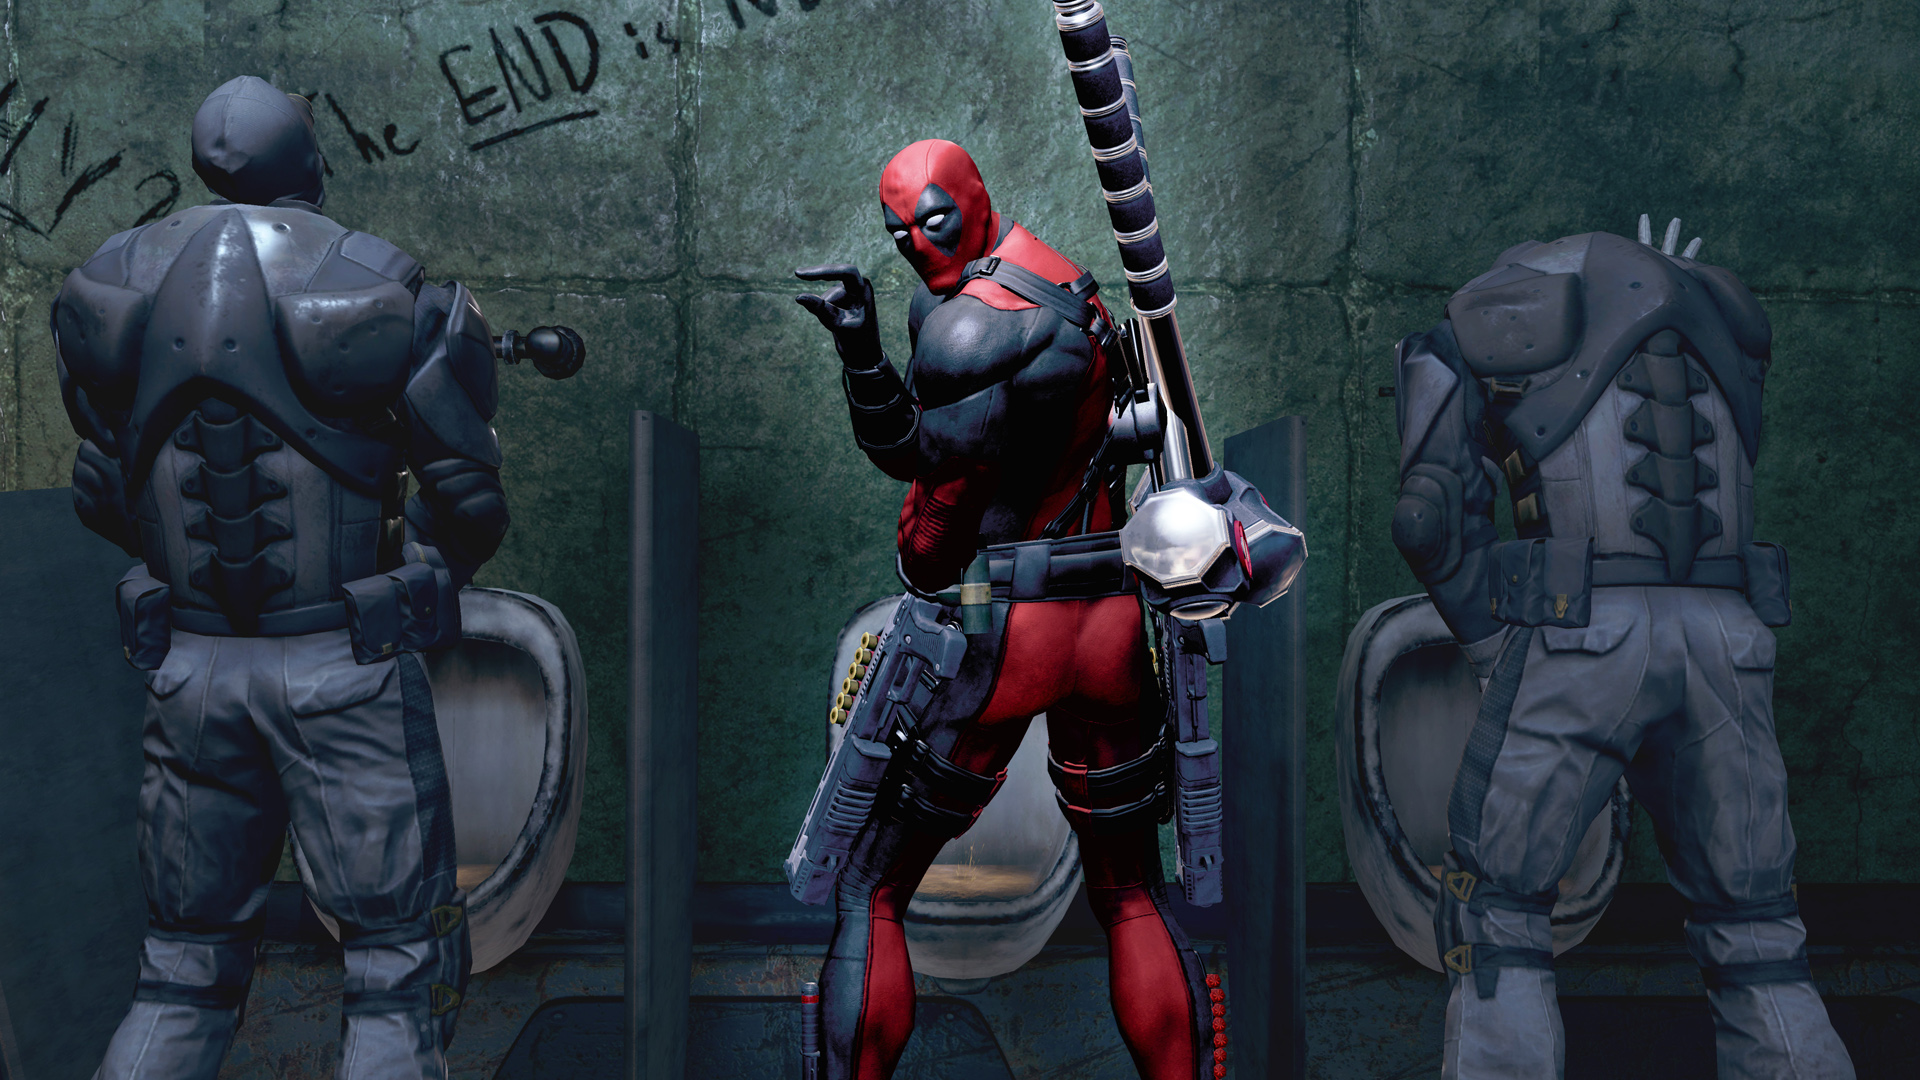 ¿A que juego estais jugando actualmente? Deadpool-2-Aww-aint-it-cute